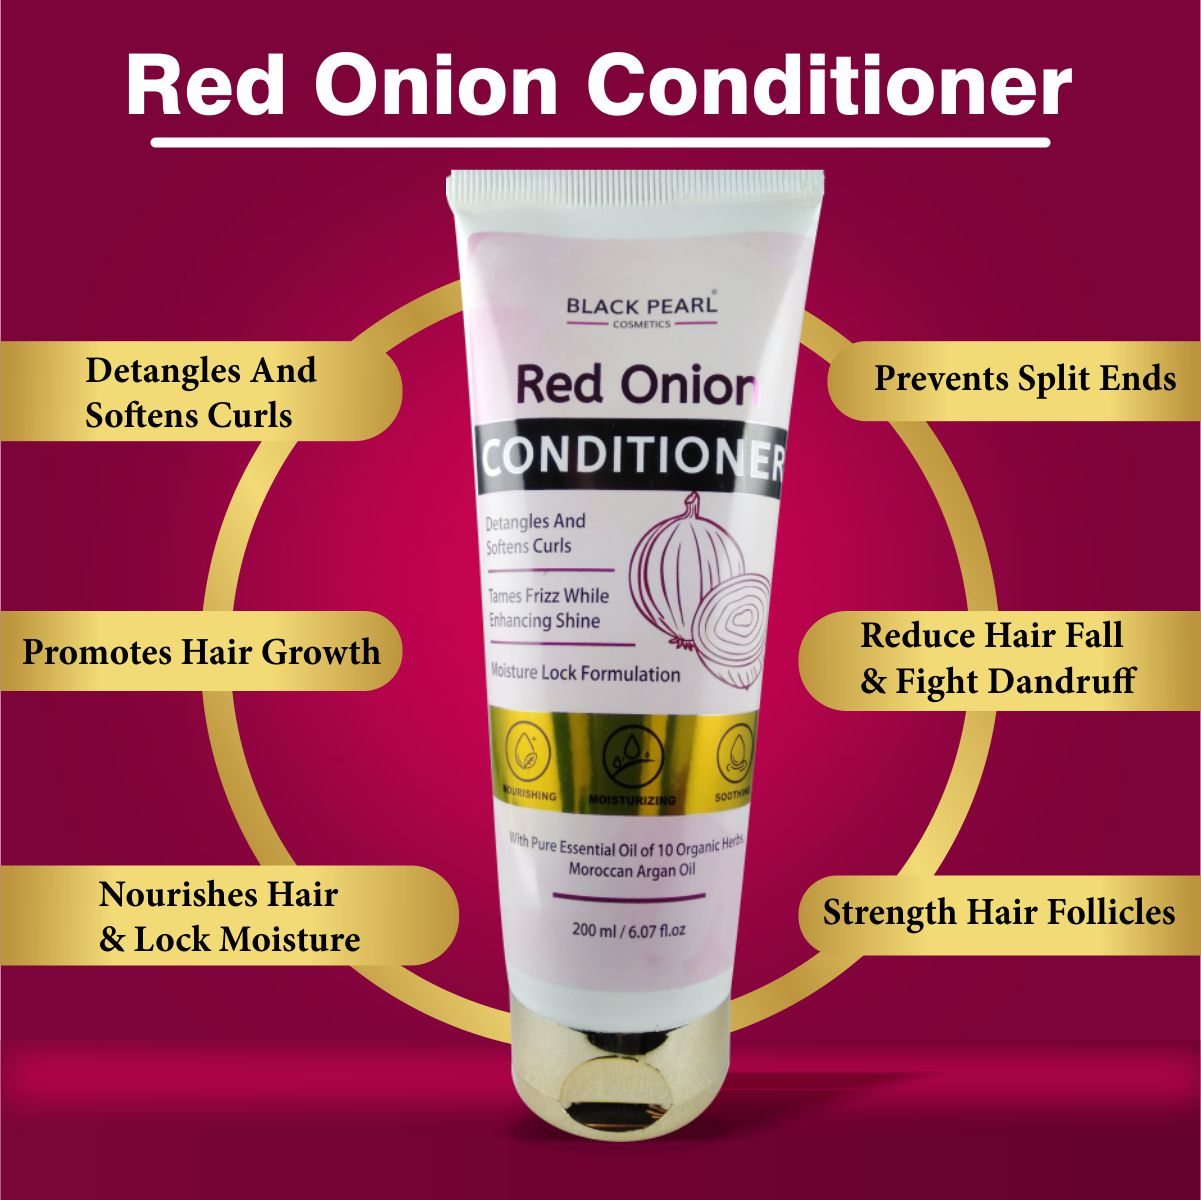 Cosmetic Manufacturer Thane Black Pearl Red Onion Conditioner Benefits